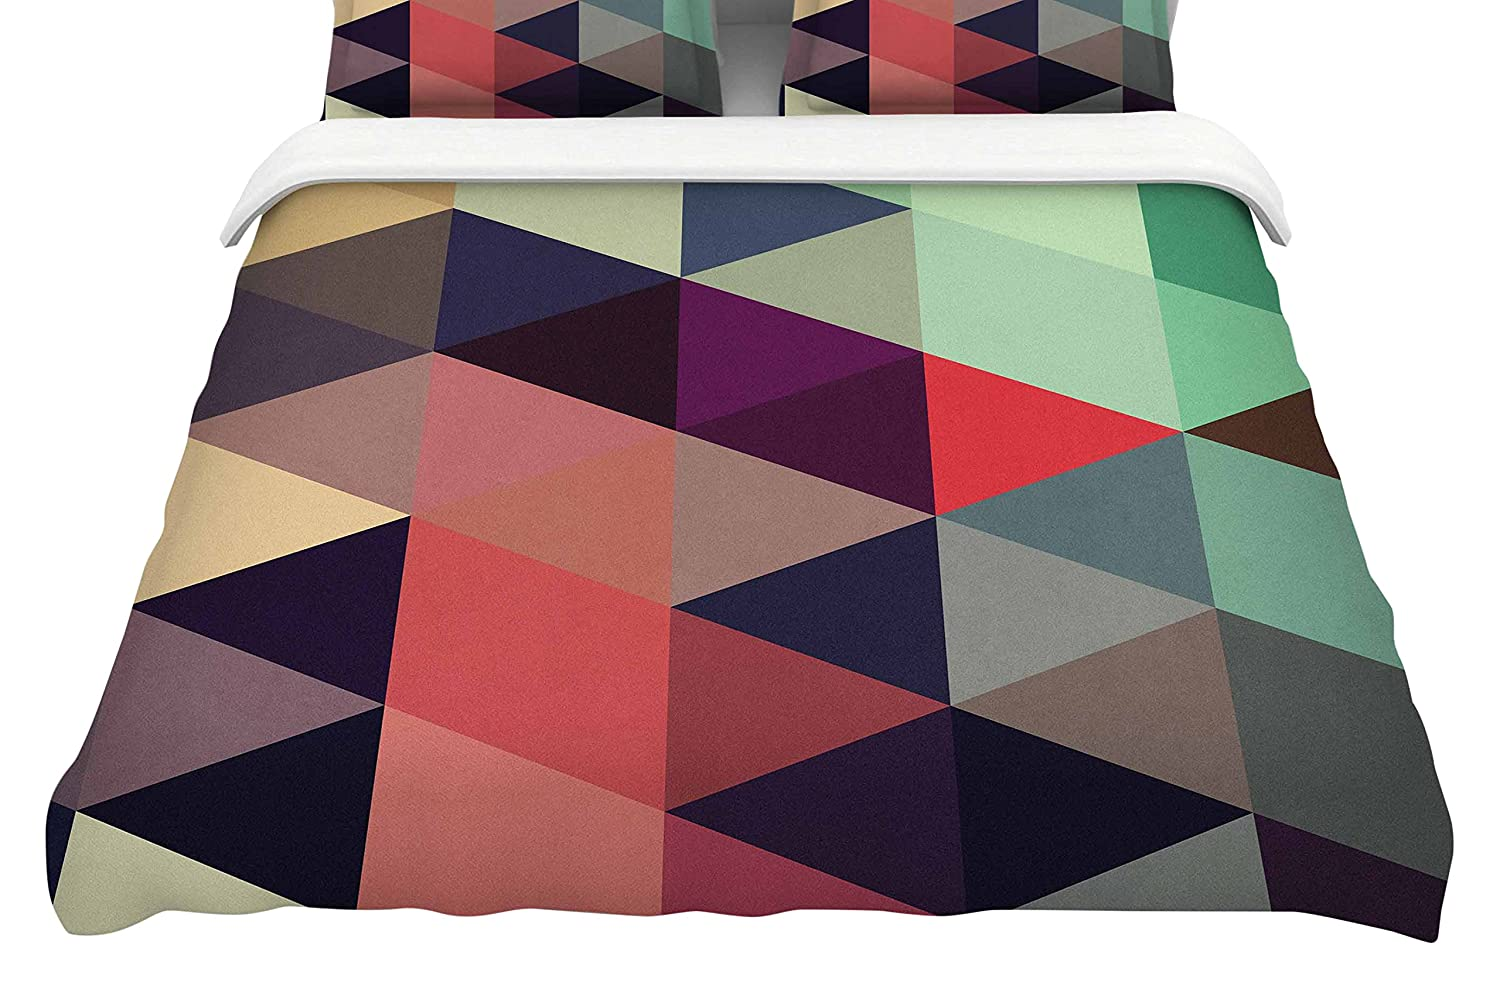 104 x 88 104 x 88 Kess InHouse Juan Paolo Labyrinth King Cotton Duvet Cover